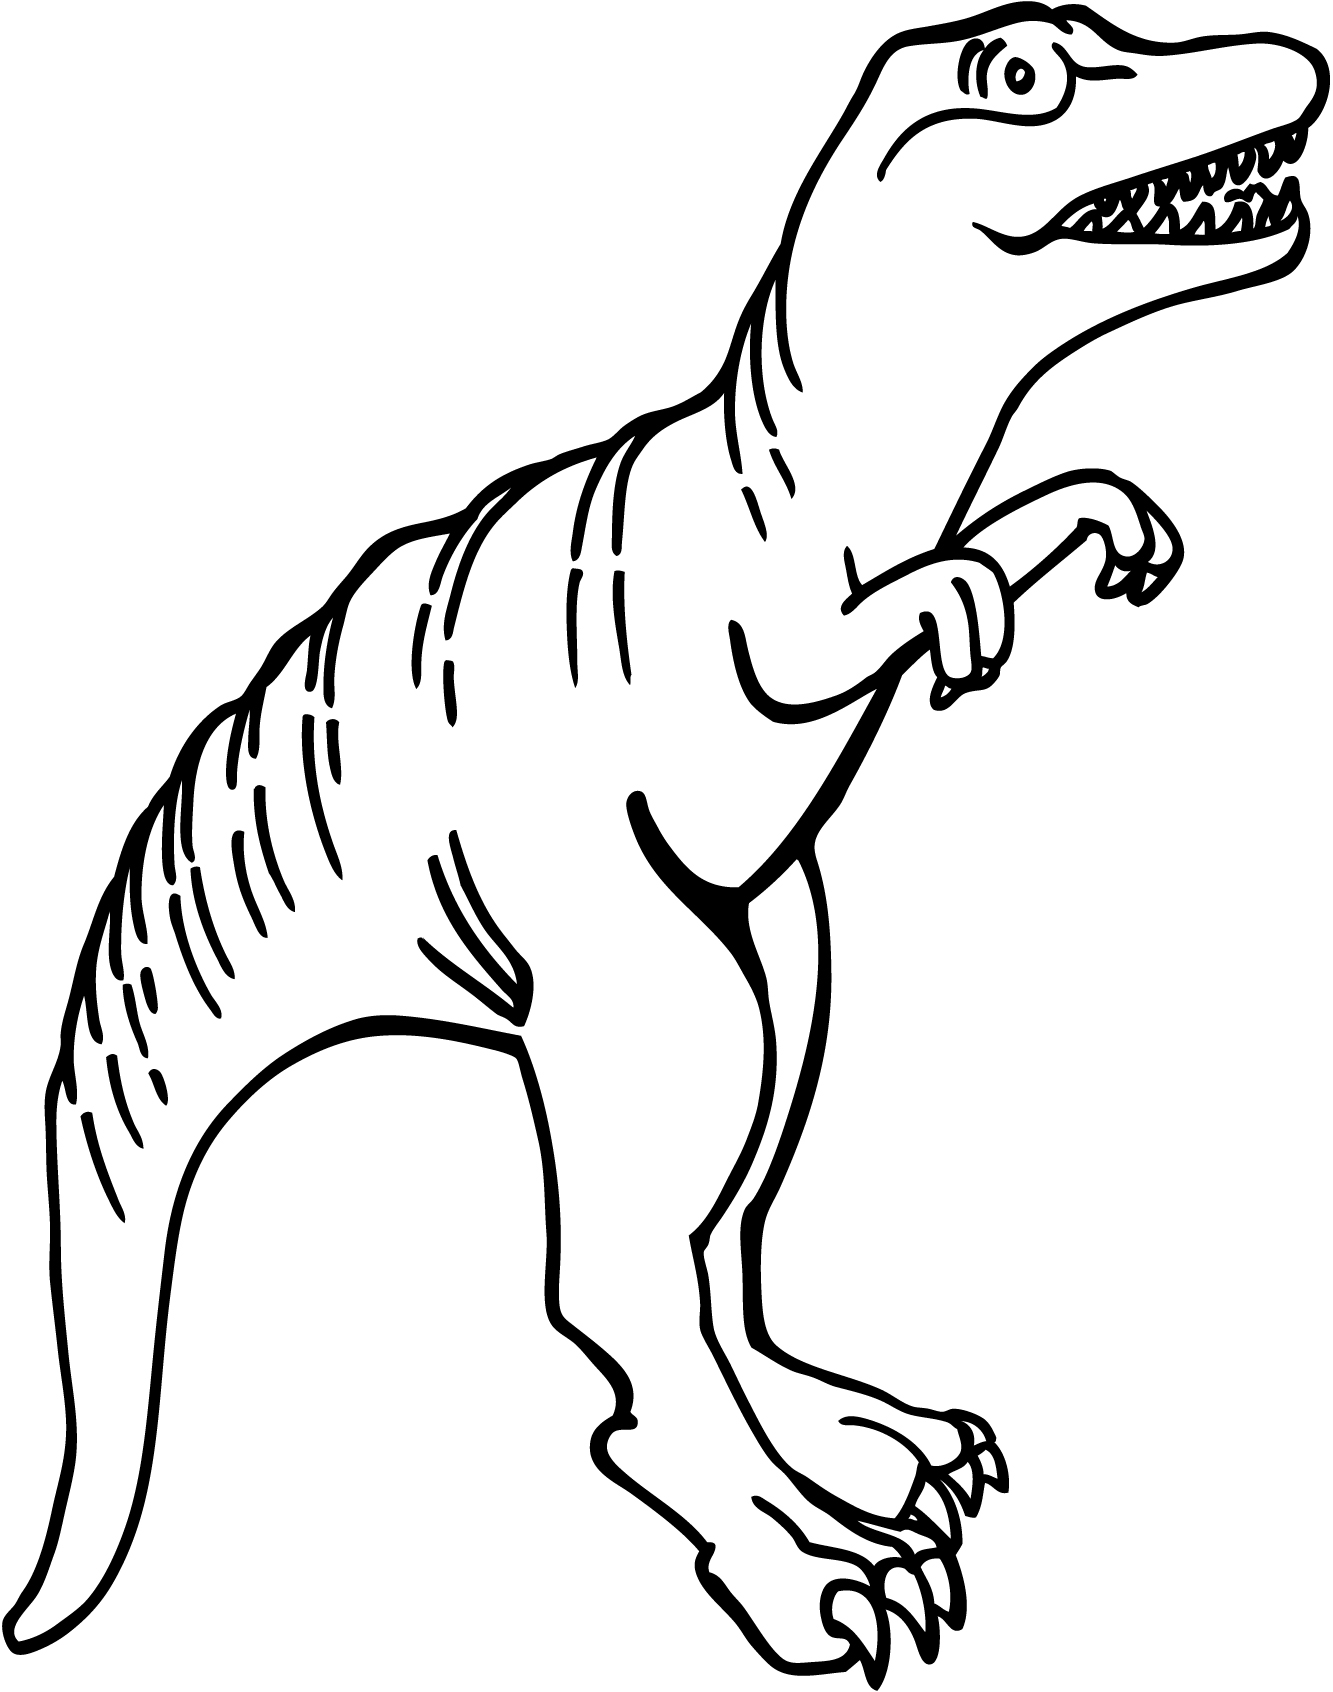 Free t rex cliparts. Trex clipart black and white